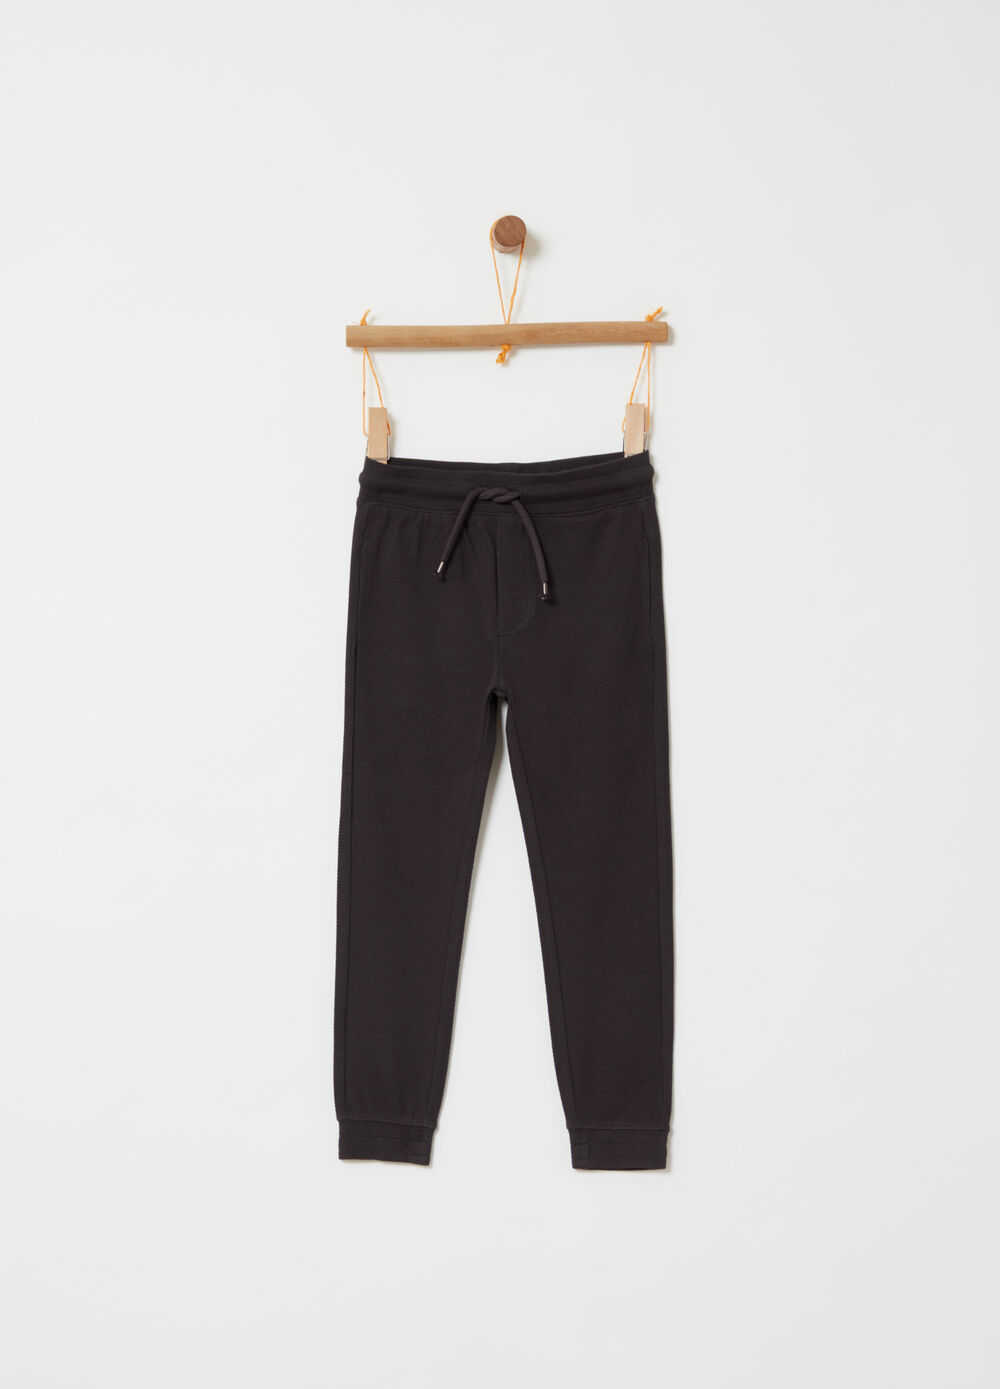 Cotton piquet trousers with functional pockets